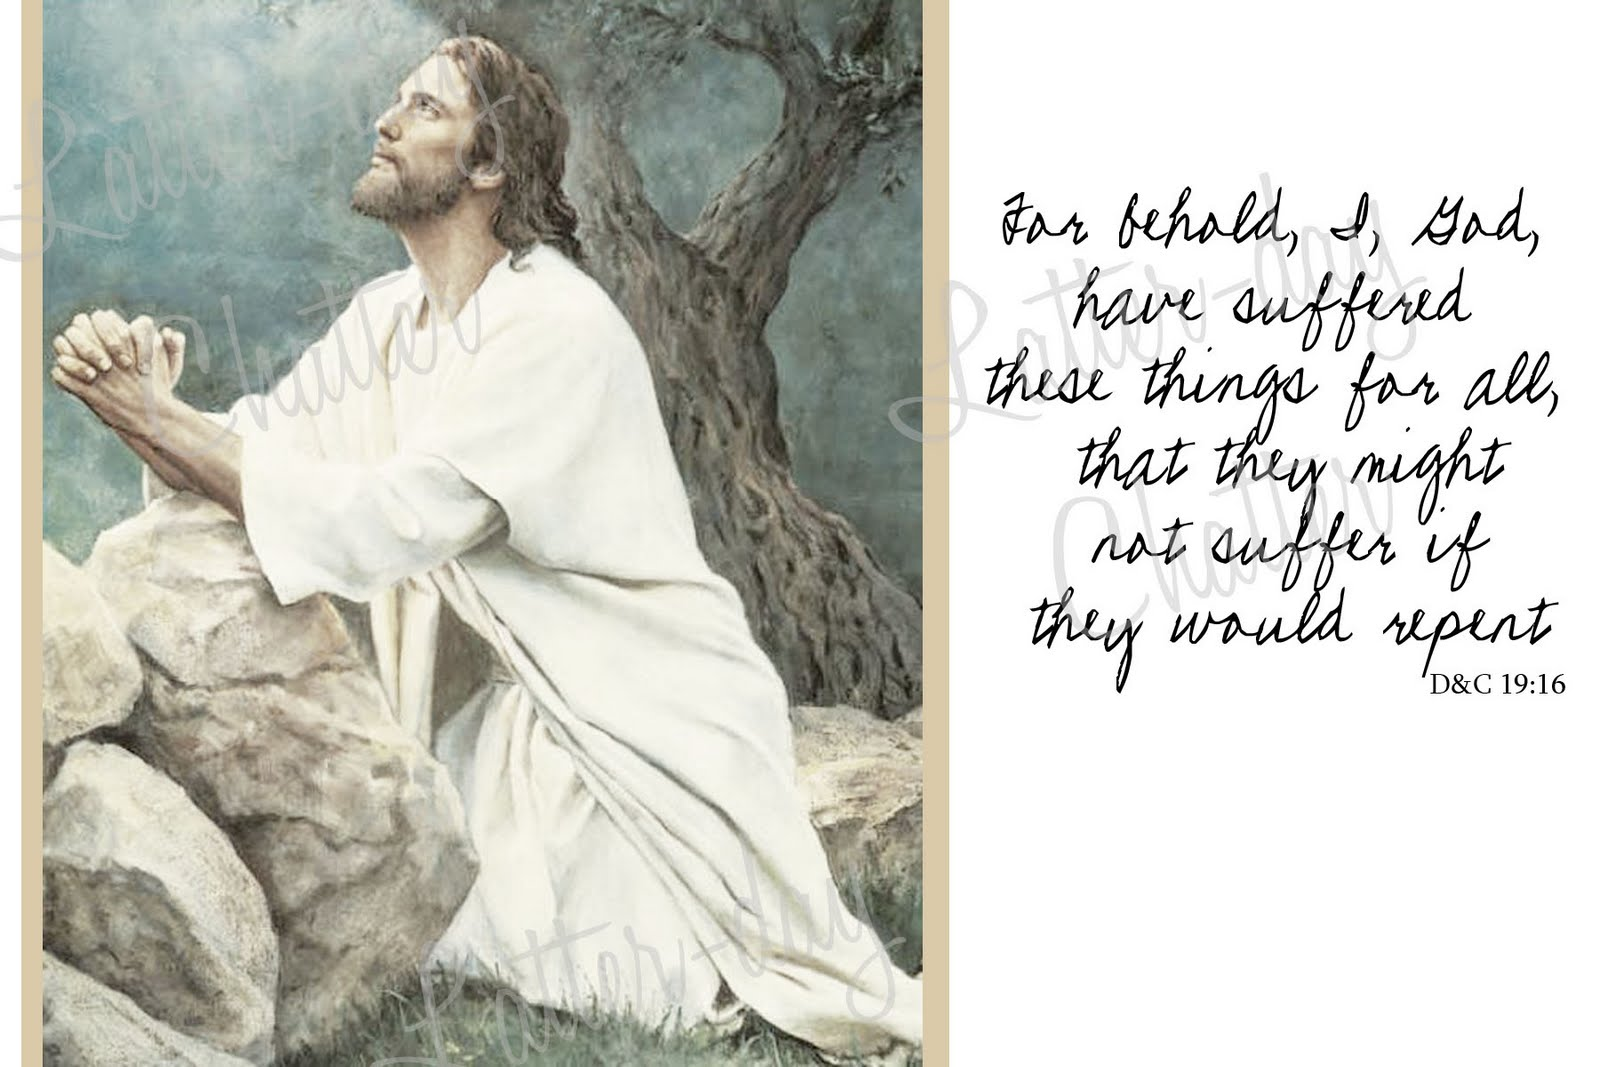 lds clipart of jesus christ Clipground